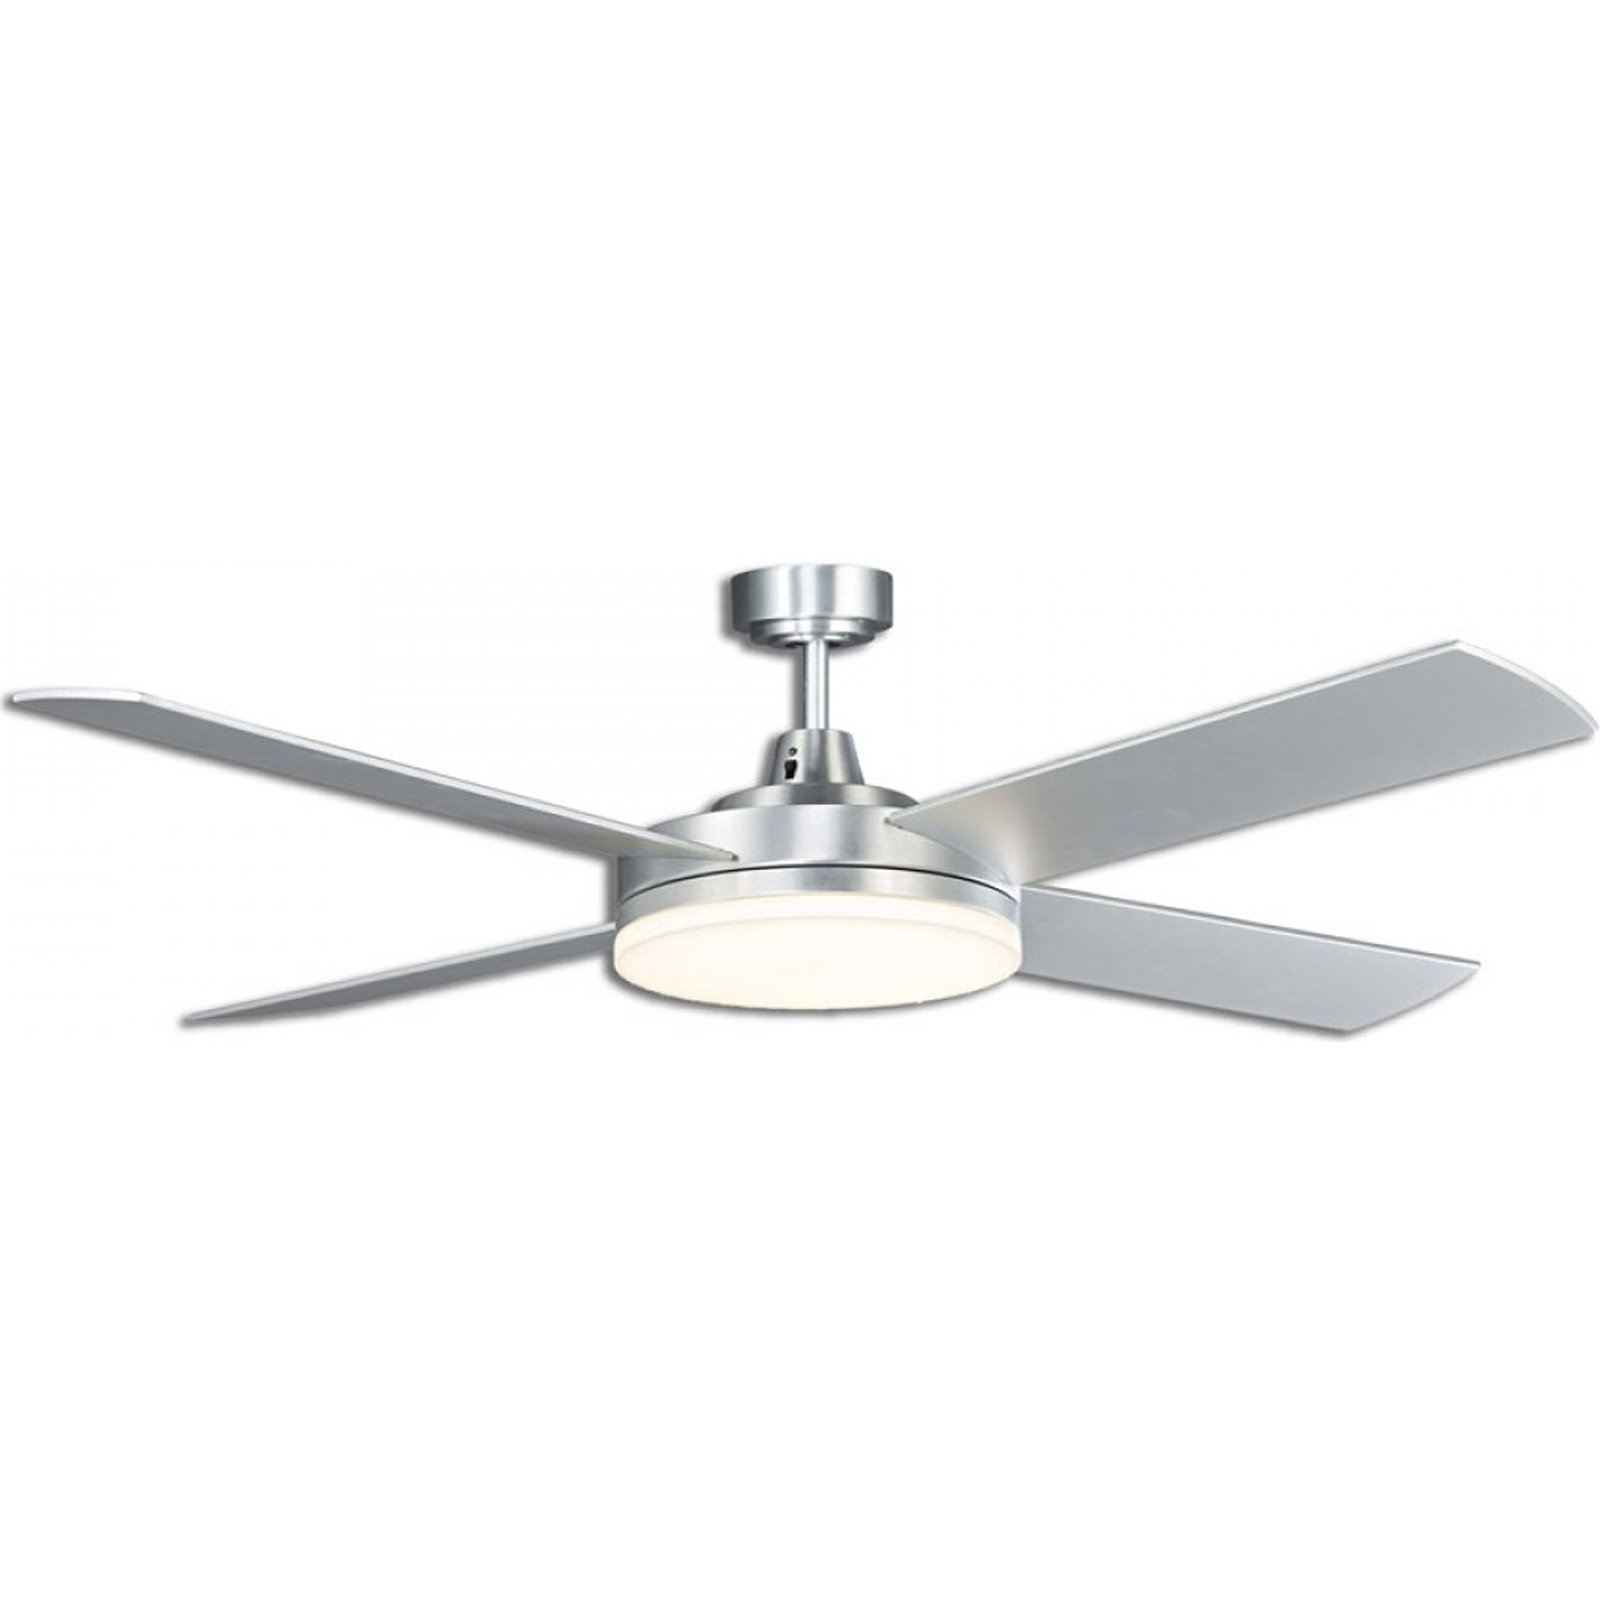 Low Profile Outdoor Ceiling Fan With Led Light | Taraba Home Review Inside Outdoor Ceiling Fans With Led Lights (#10 of 15)